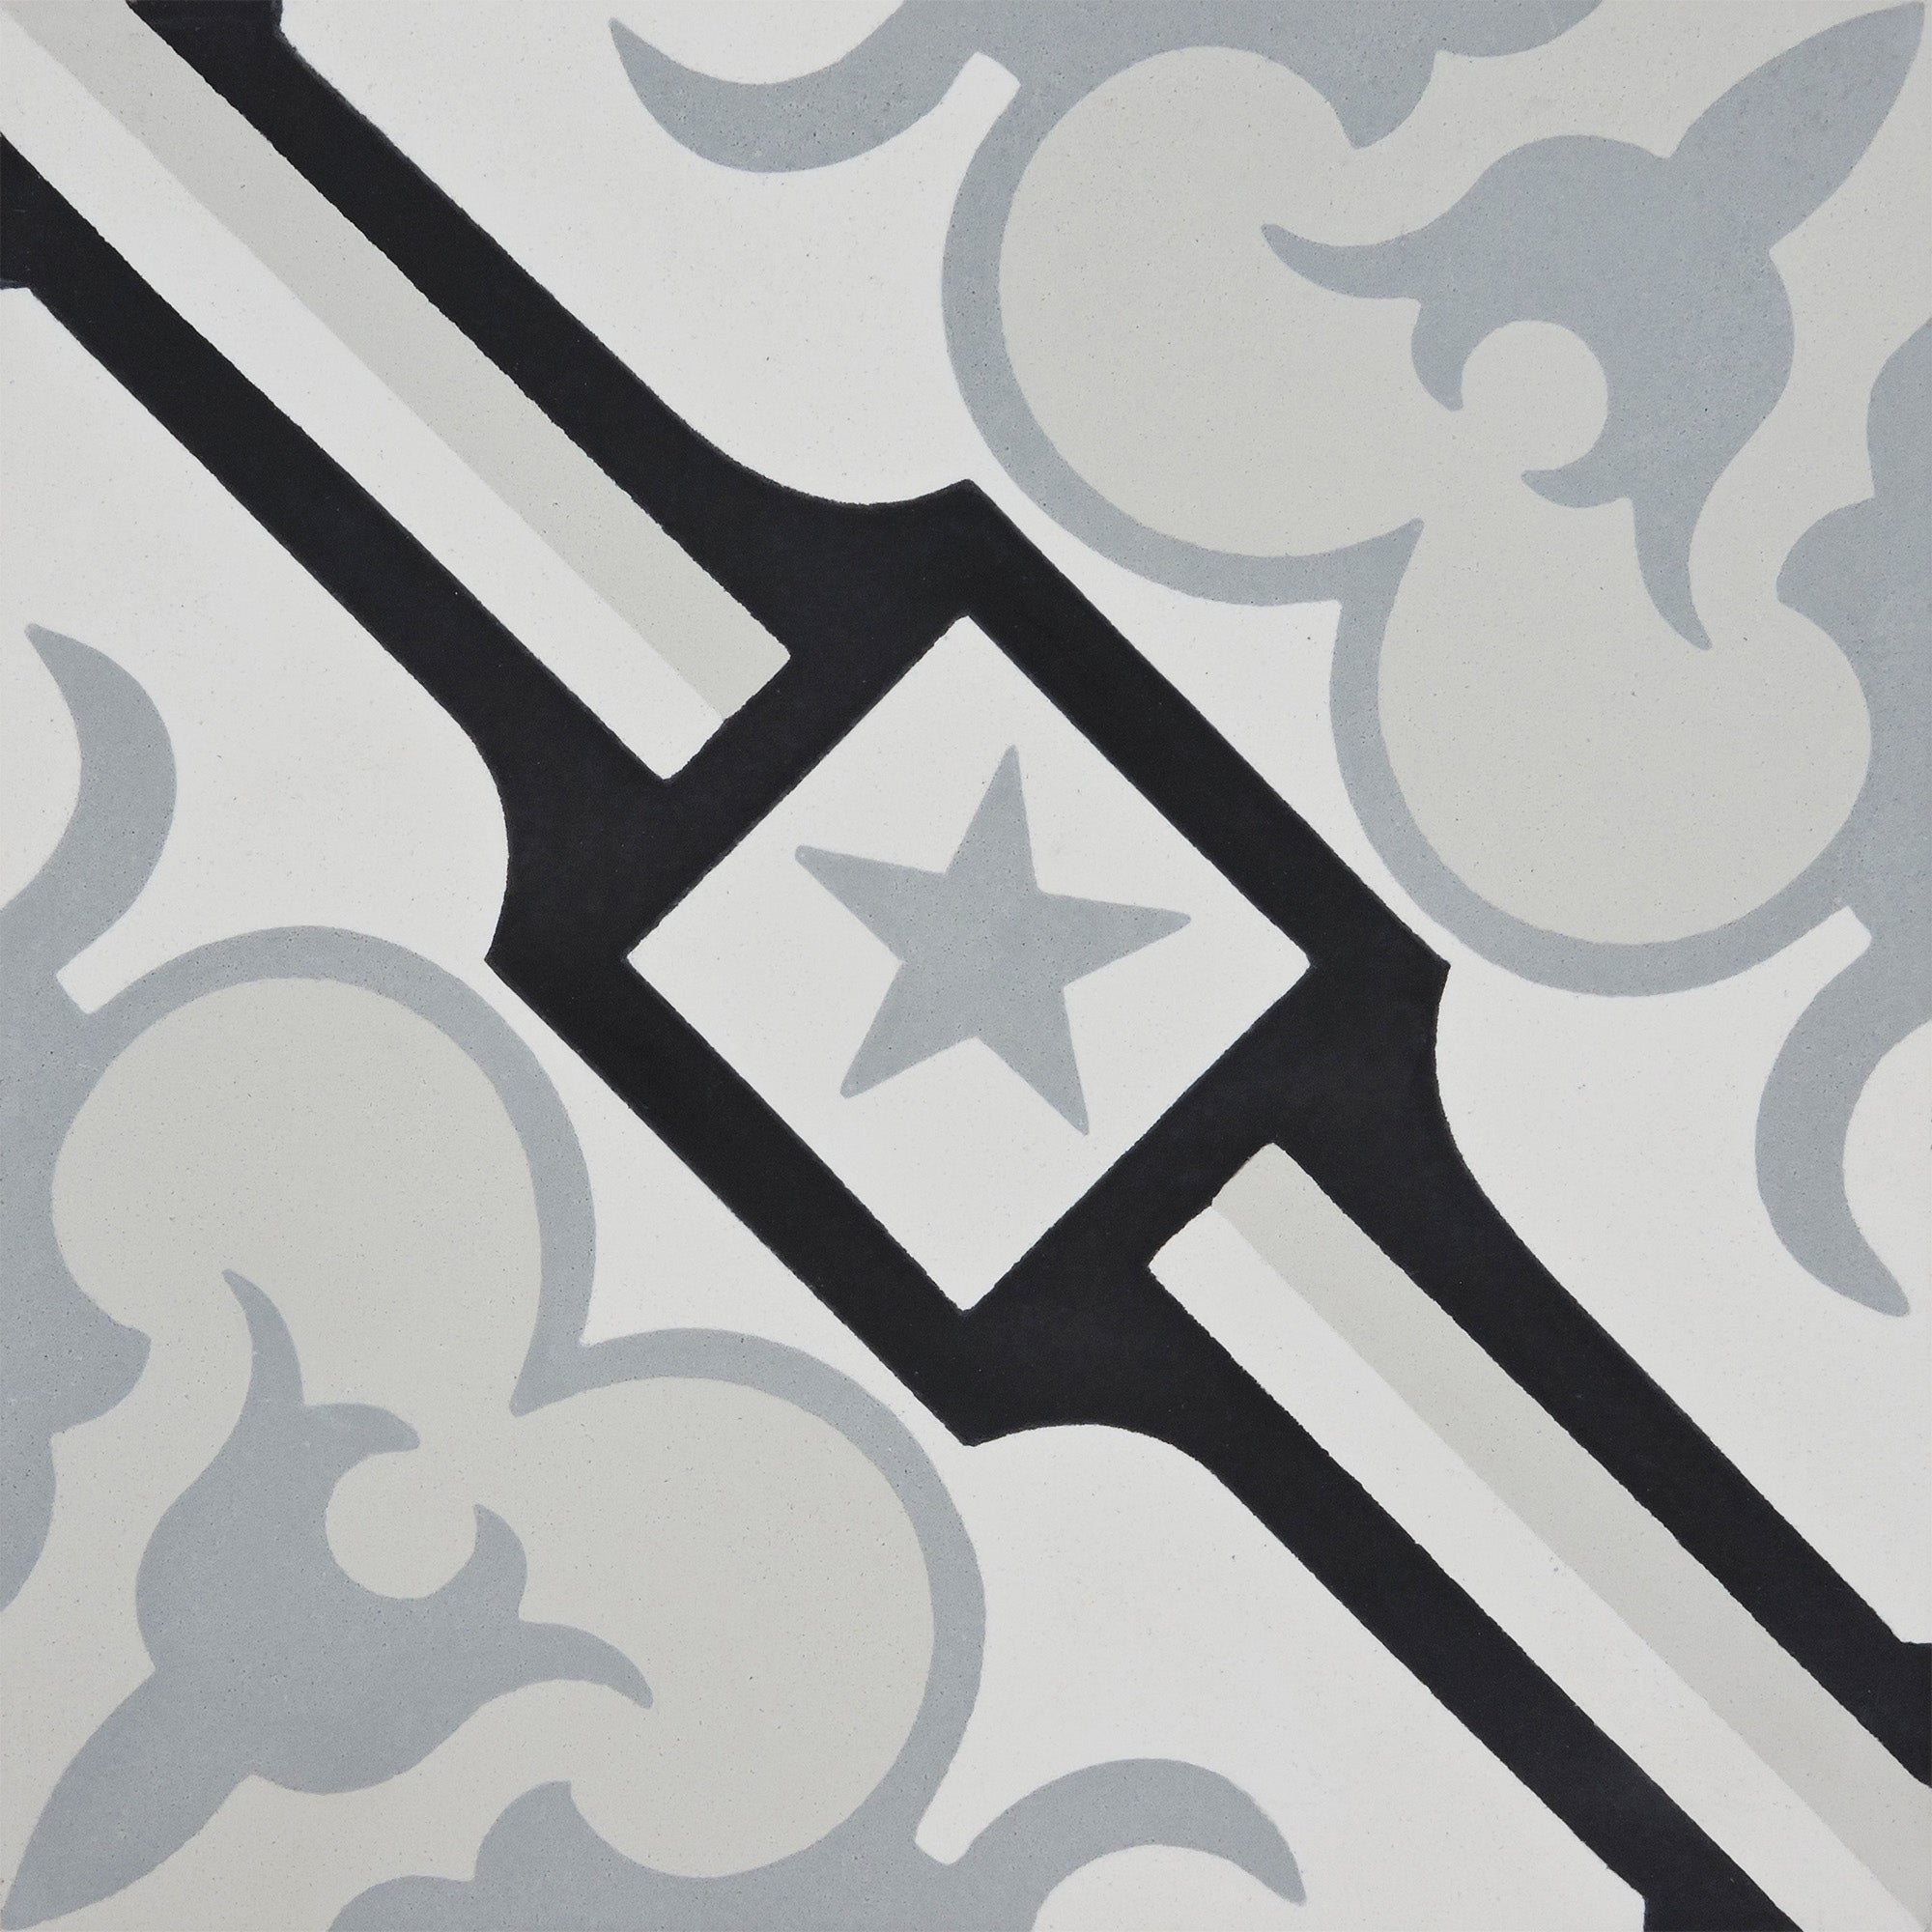 Handmade Chala In Black And Greys Tile Pack Of 12 Morocco Overstock 14080641